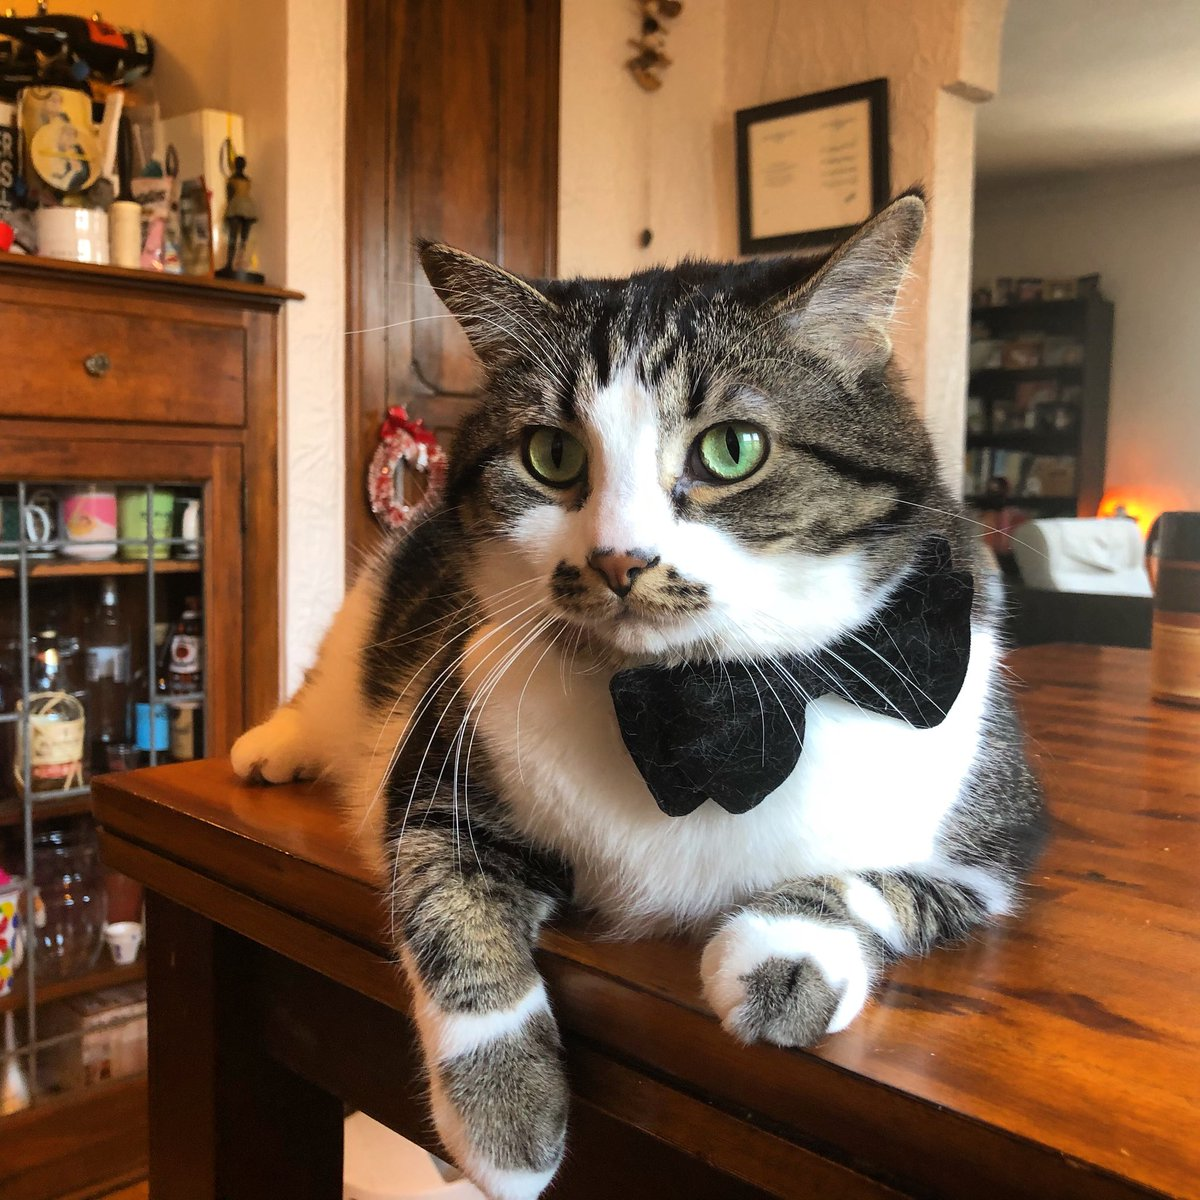 @dionnewarwick Meet George Muffins! He loves formal wear and raw chicken #peaceandpets